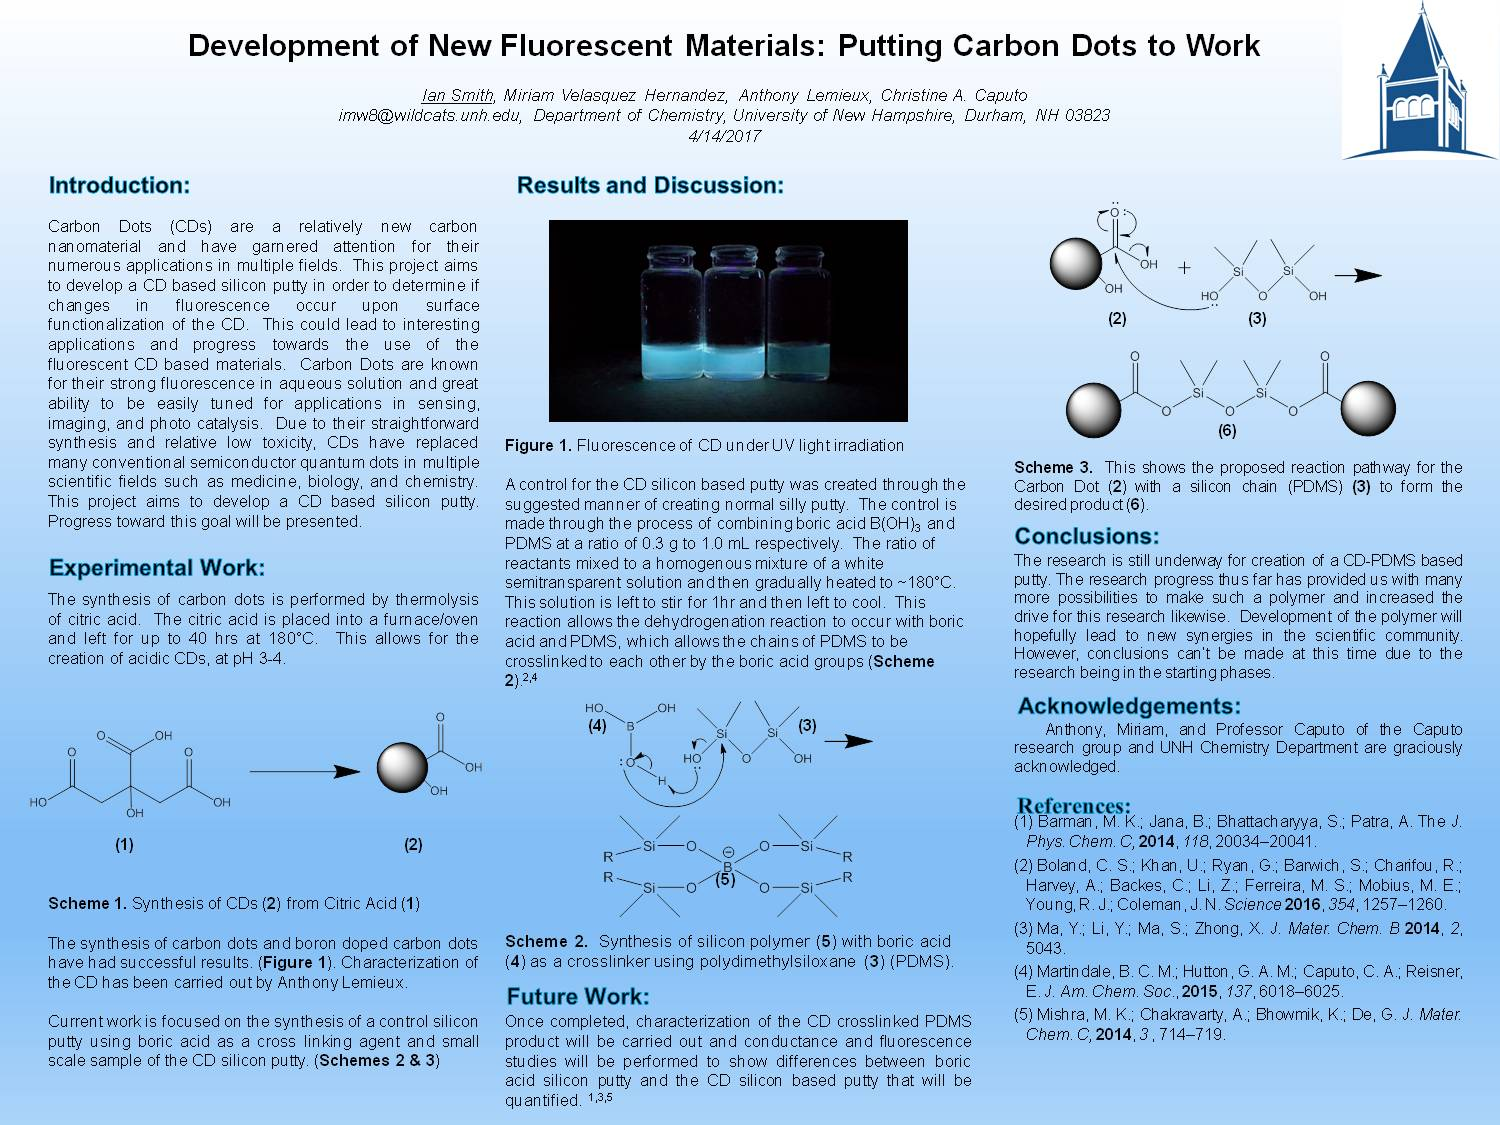 Development Of New Fluorescent Materials: Putting Carbon Dots To Work by imw8